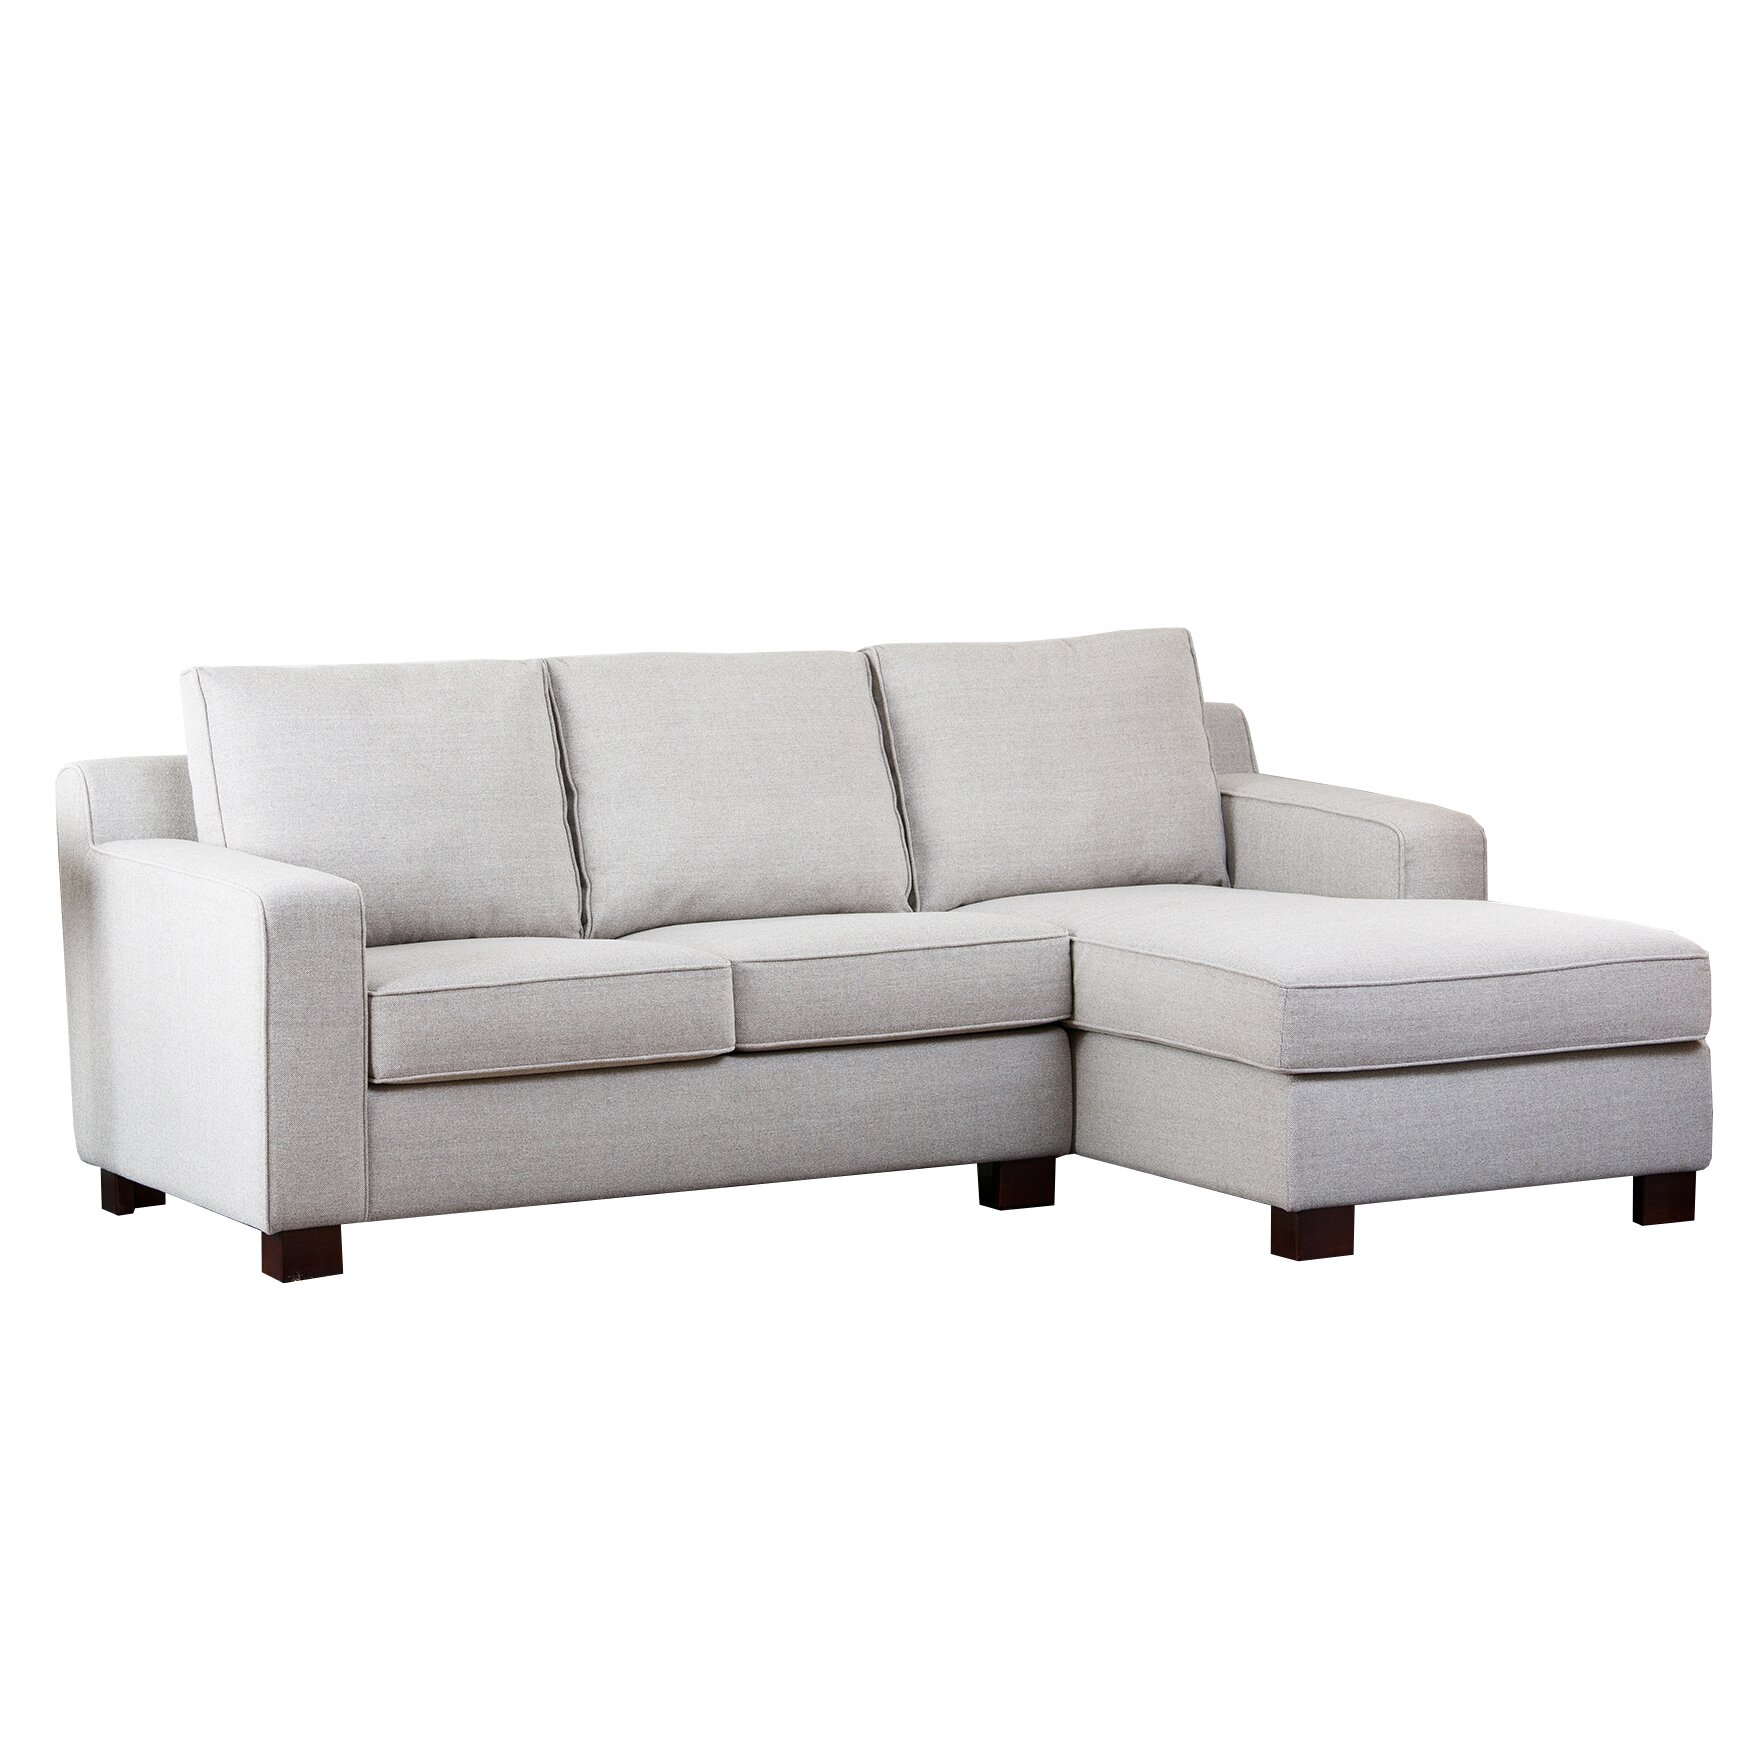 Latitude run blaxlands right hand facing sectional for Wayfair sectionals